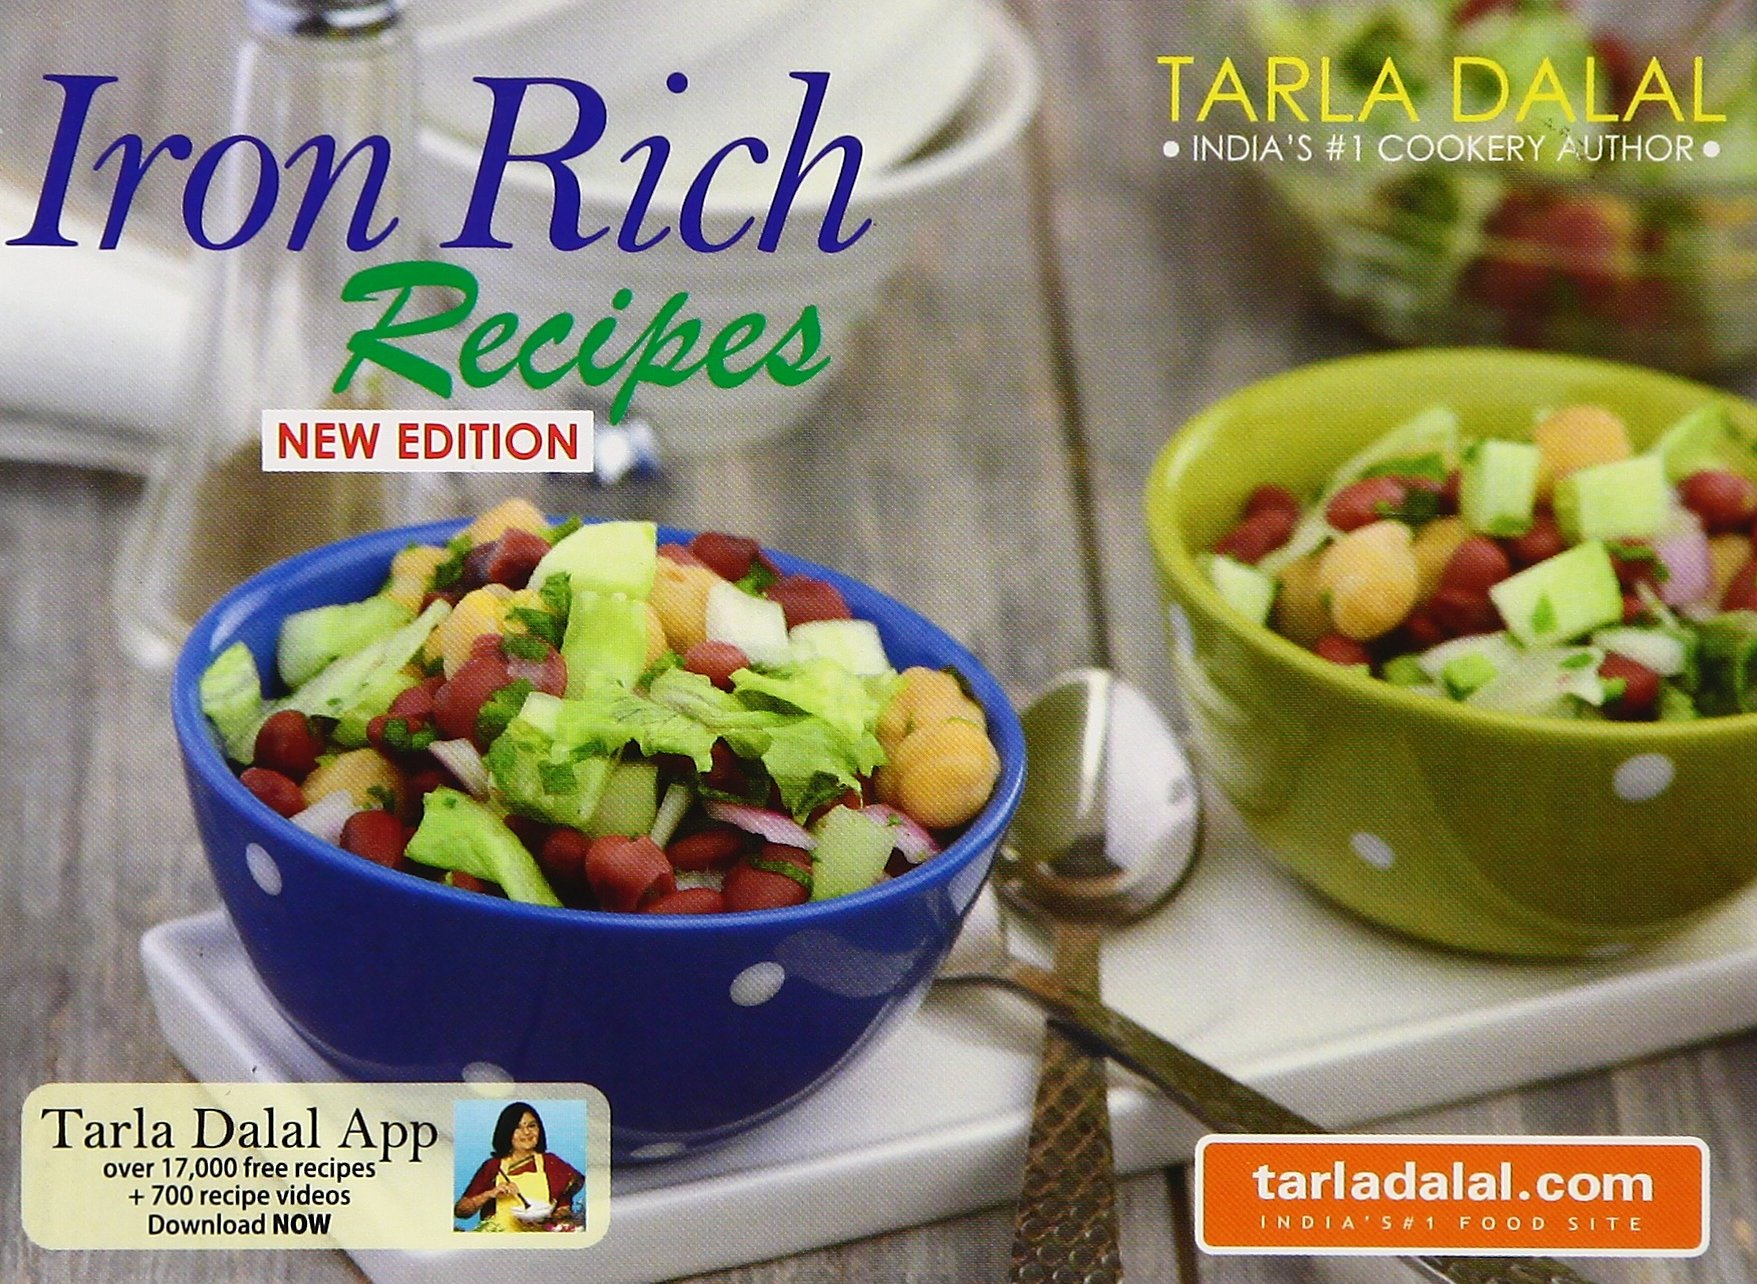 Buy iron rich recipes 1 book online at low prices in india iron buy iron rich recipes 1 book online at low prices in india iron rich recipes 1 reviews ratings amazon forumfinder Image collections